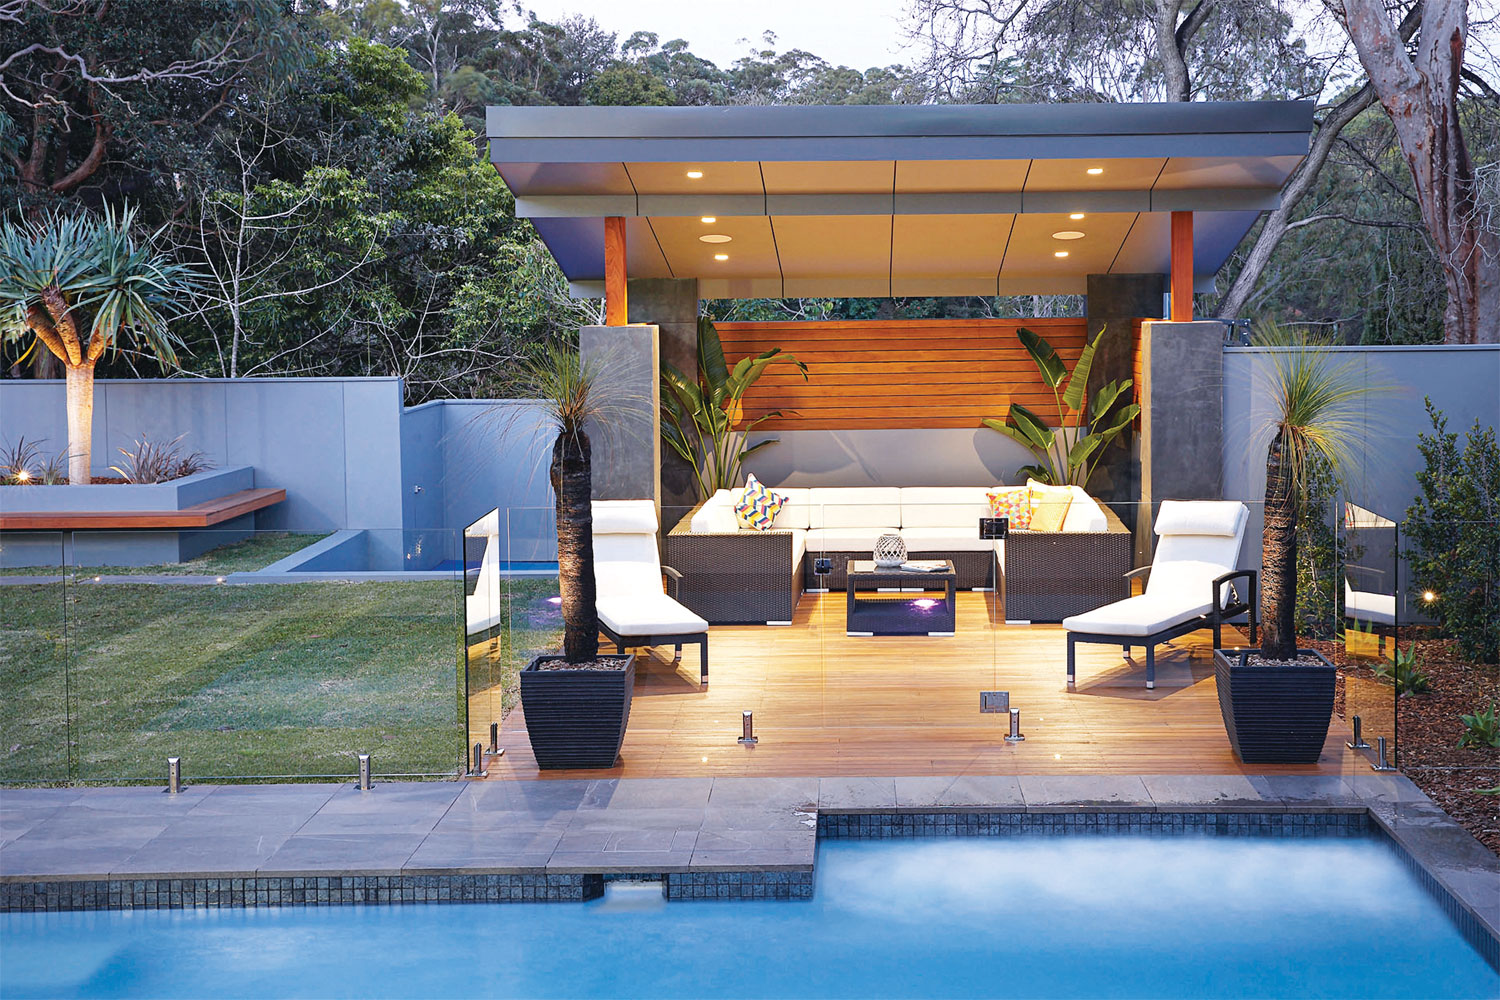 This outdoor entertaining area offers seamless open-plan living